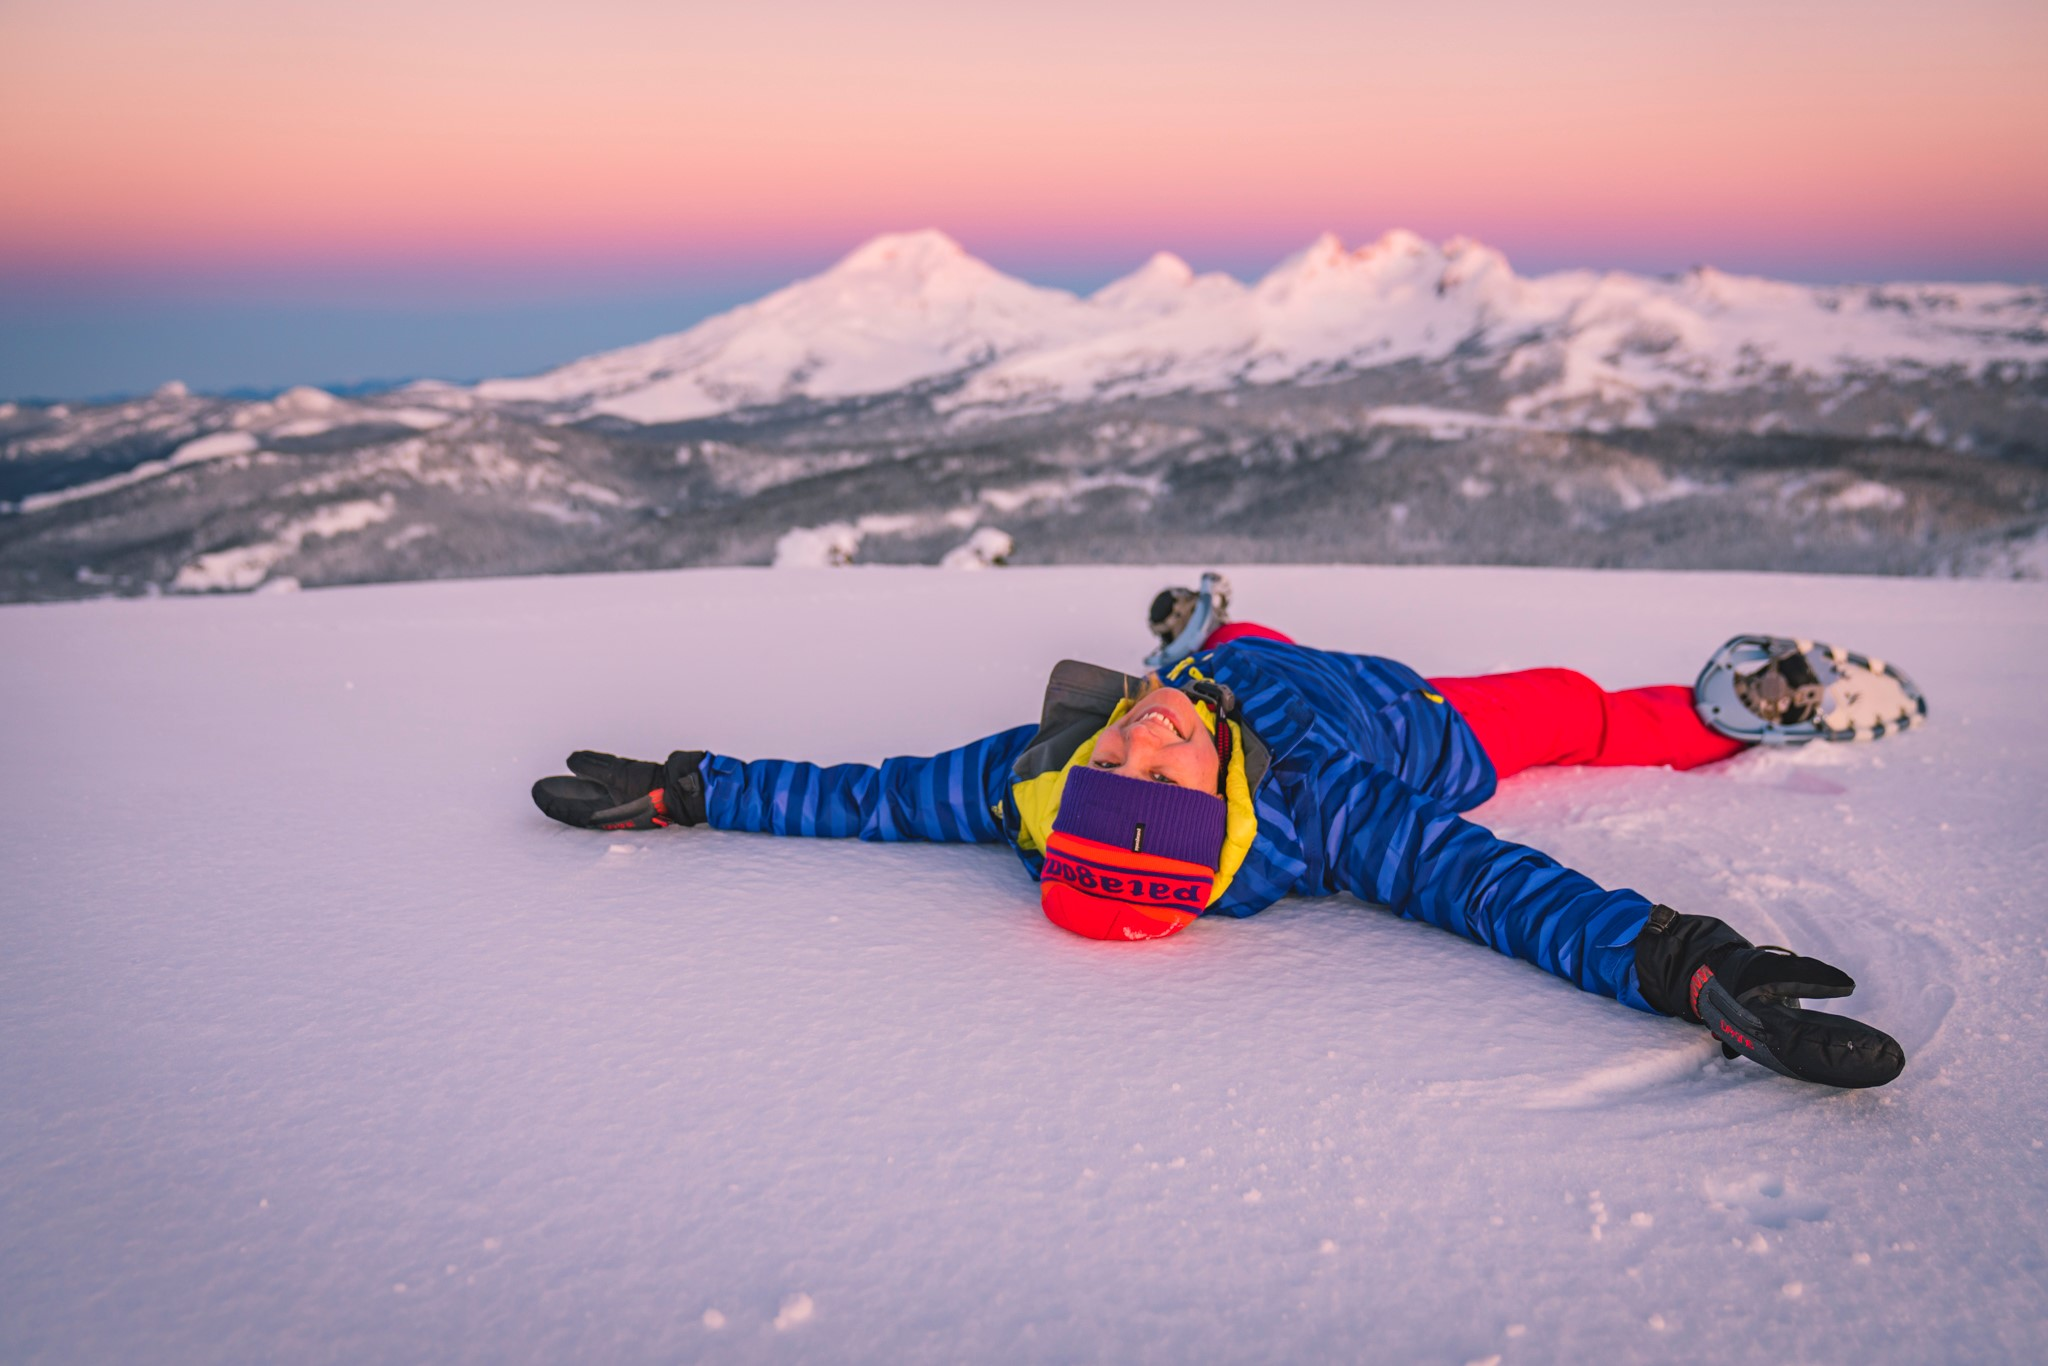 Making a snow angel with a view of the Cascade Mountains.